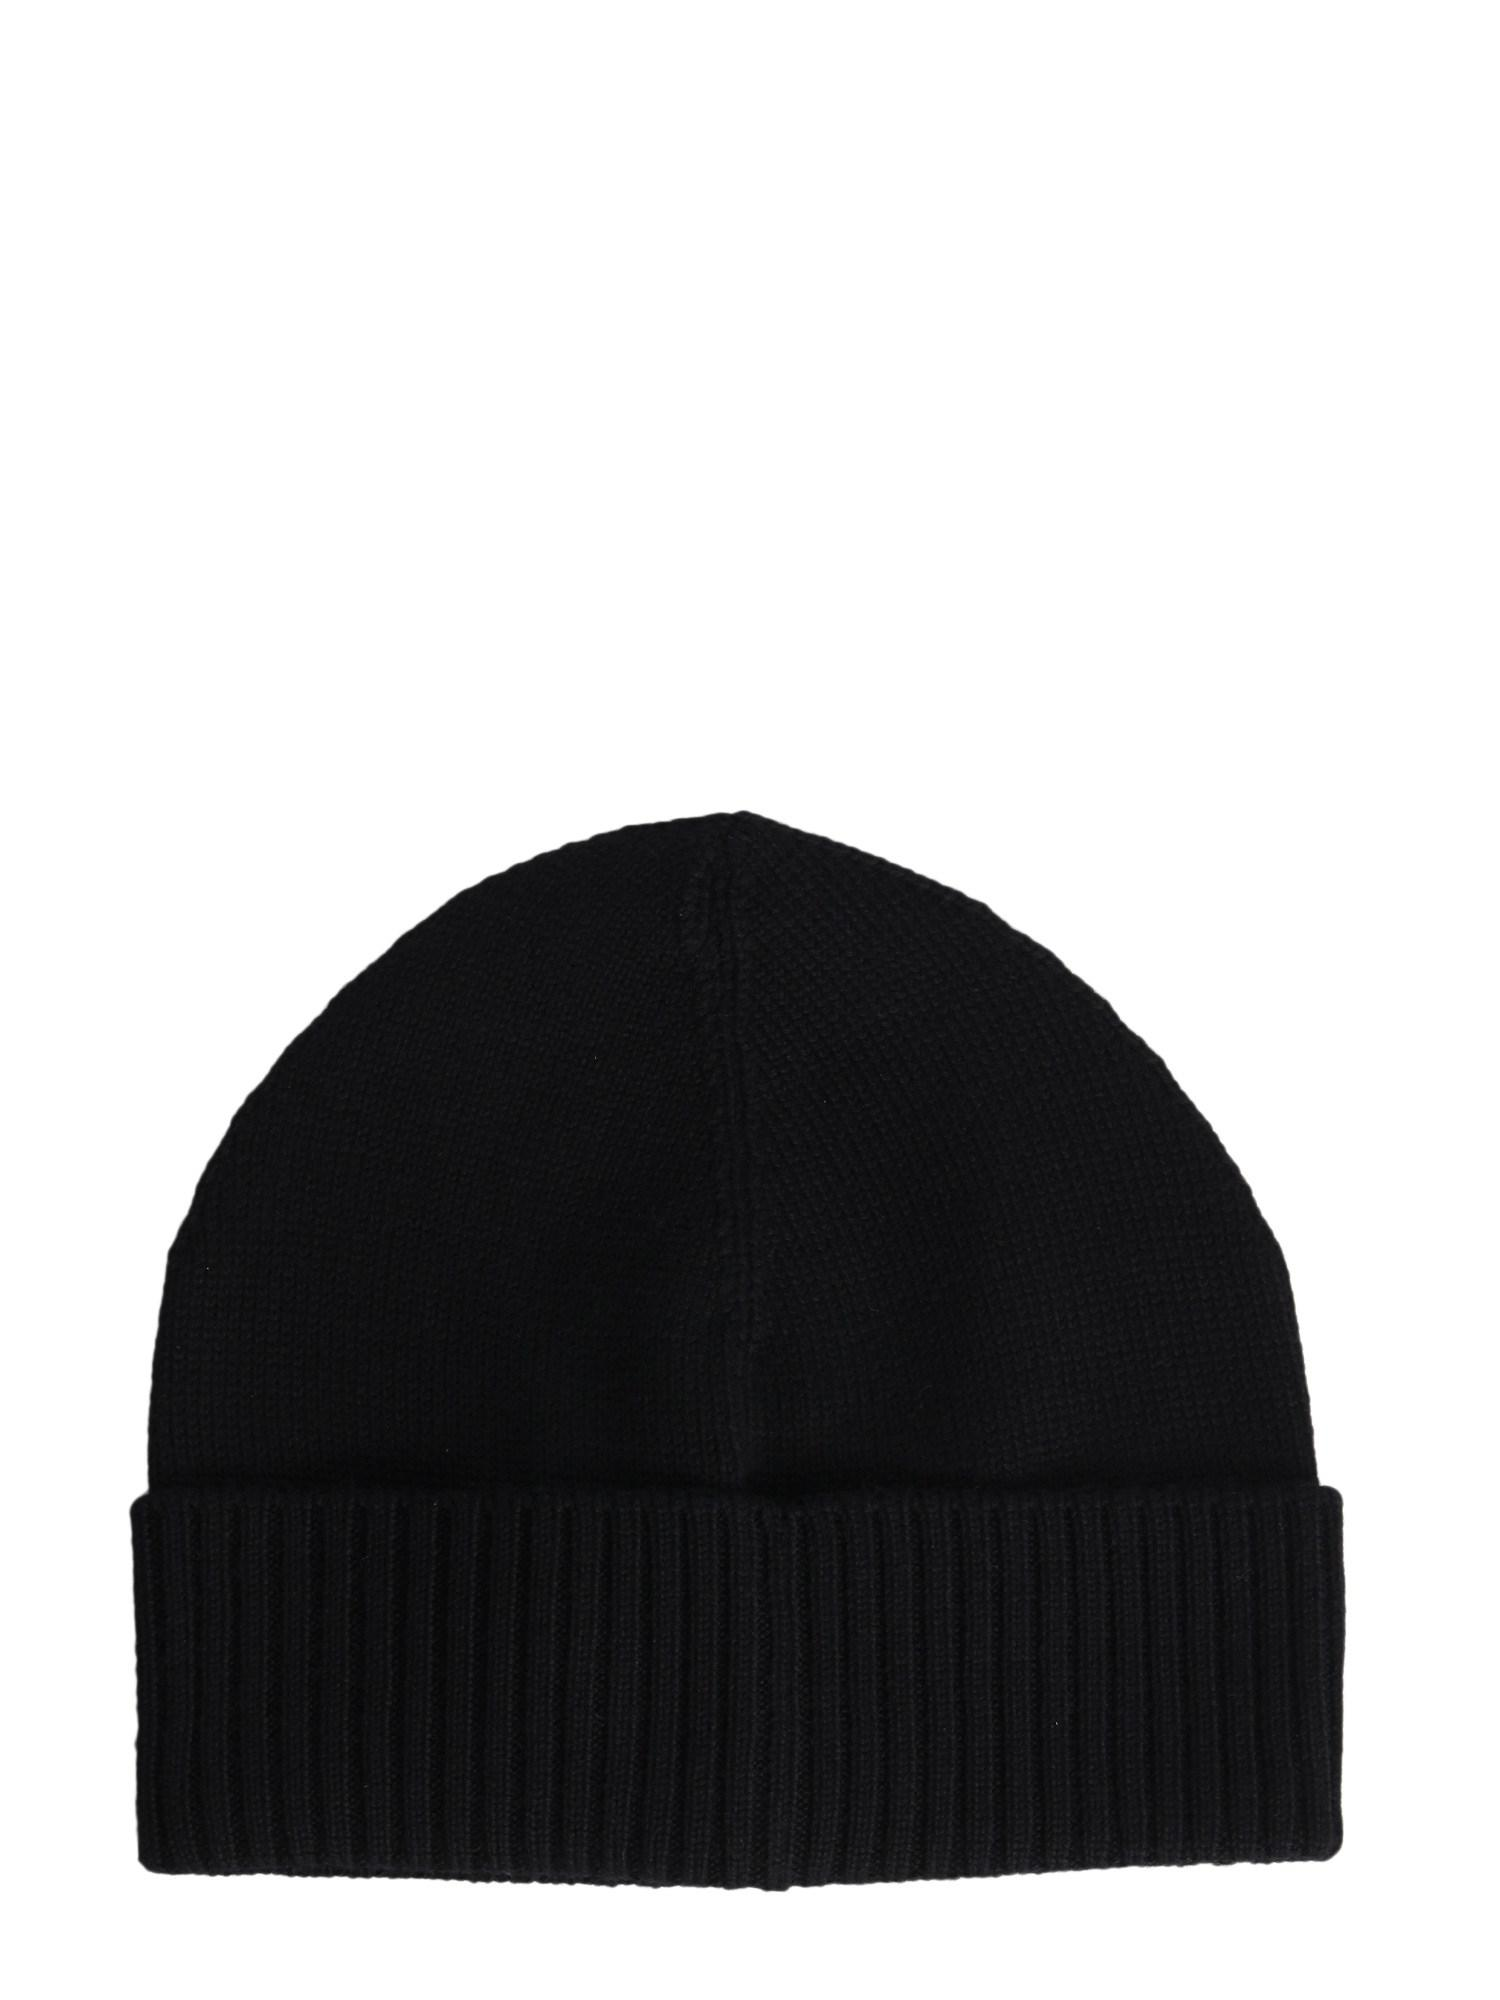 f92fcb8615d Vivienne Westwood - Black Wool Beanie With Iconic Embroidery for Men - Lyst